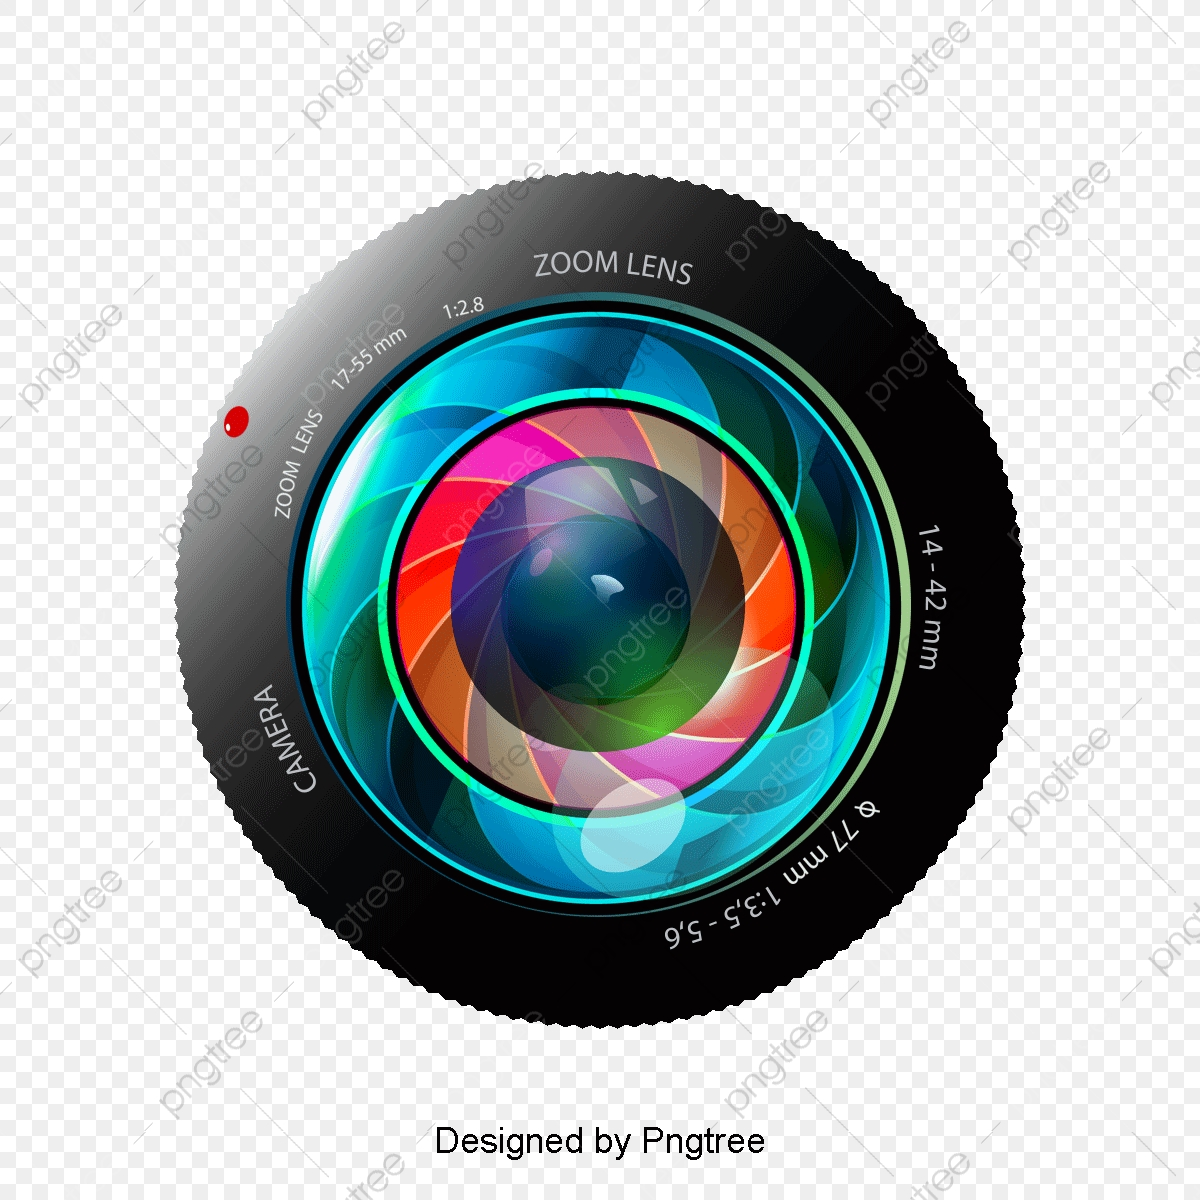 Camera Lens, Camera Clipart, Camera, Icon PNG Transparent Image and